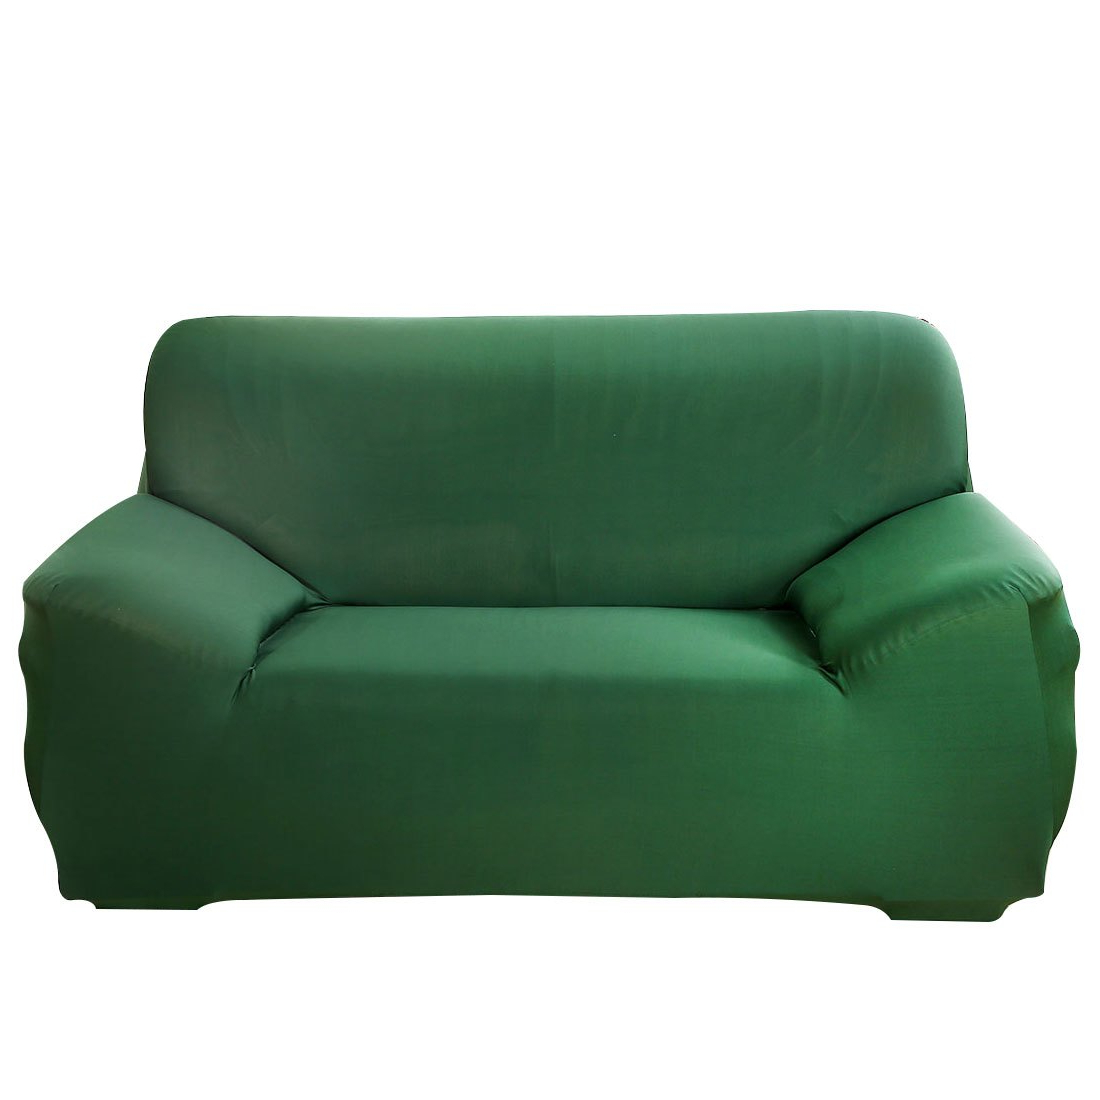 Fashionable Unique Bargains: Stretch Sofa Covers Chair Cover Couch Sofa In Sofa And Chair Slipcovers (View 5 of 20)